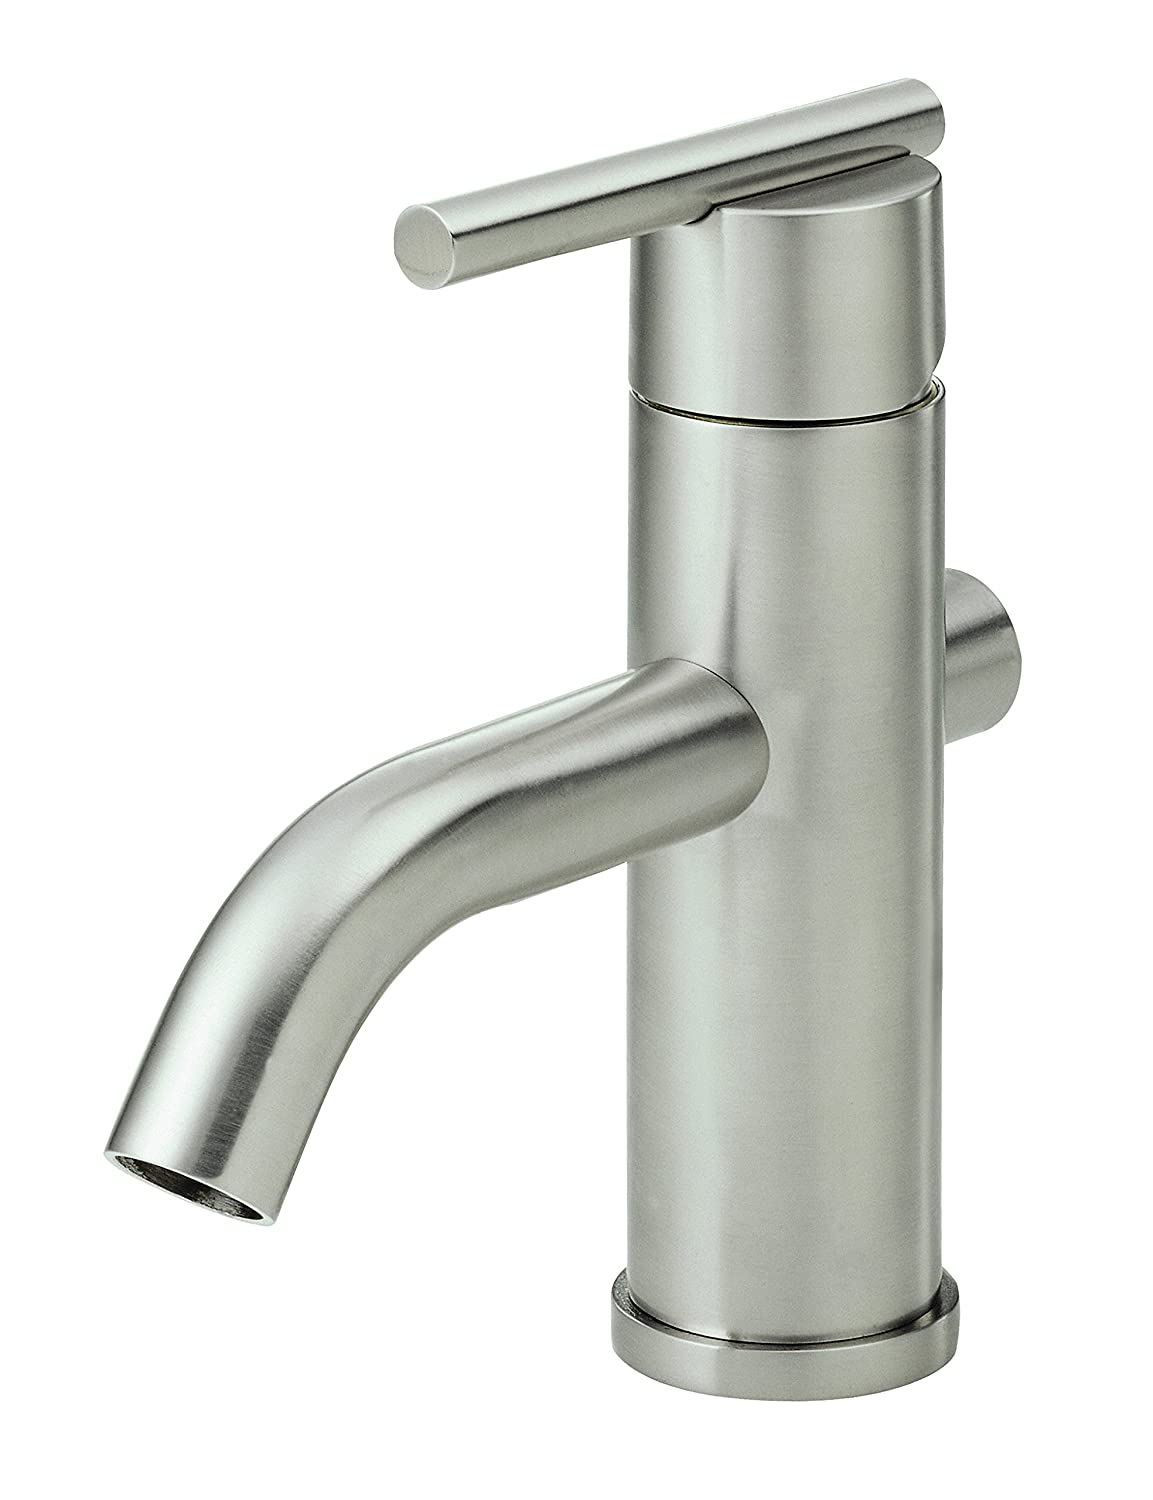 Danze D225658 Parma Single Handle Lavatory Faucet Chrome Amazon Com